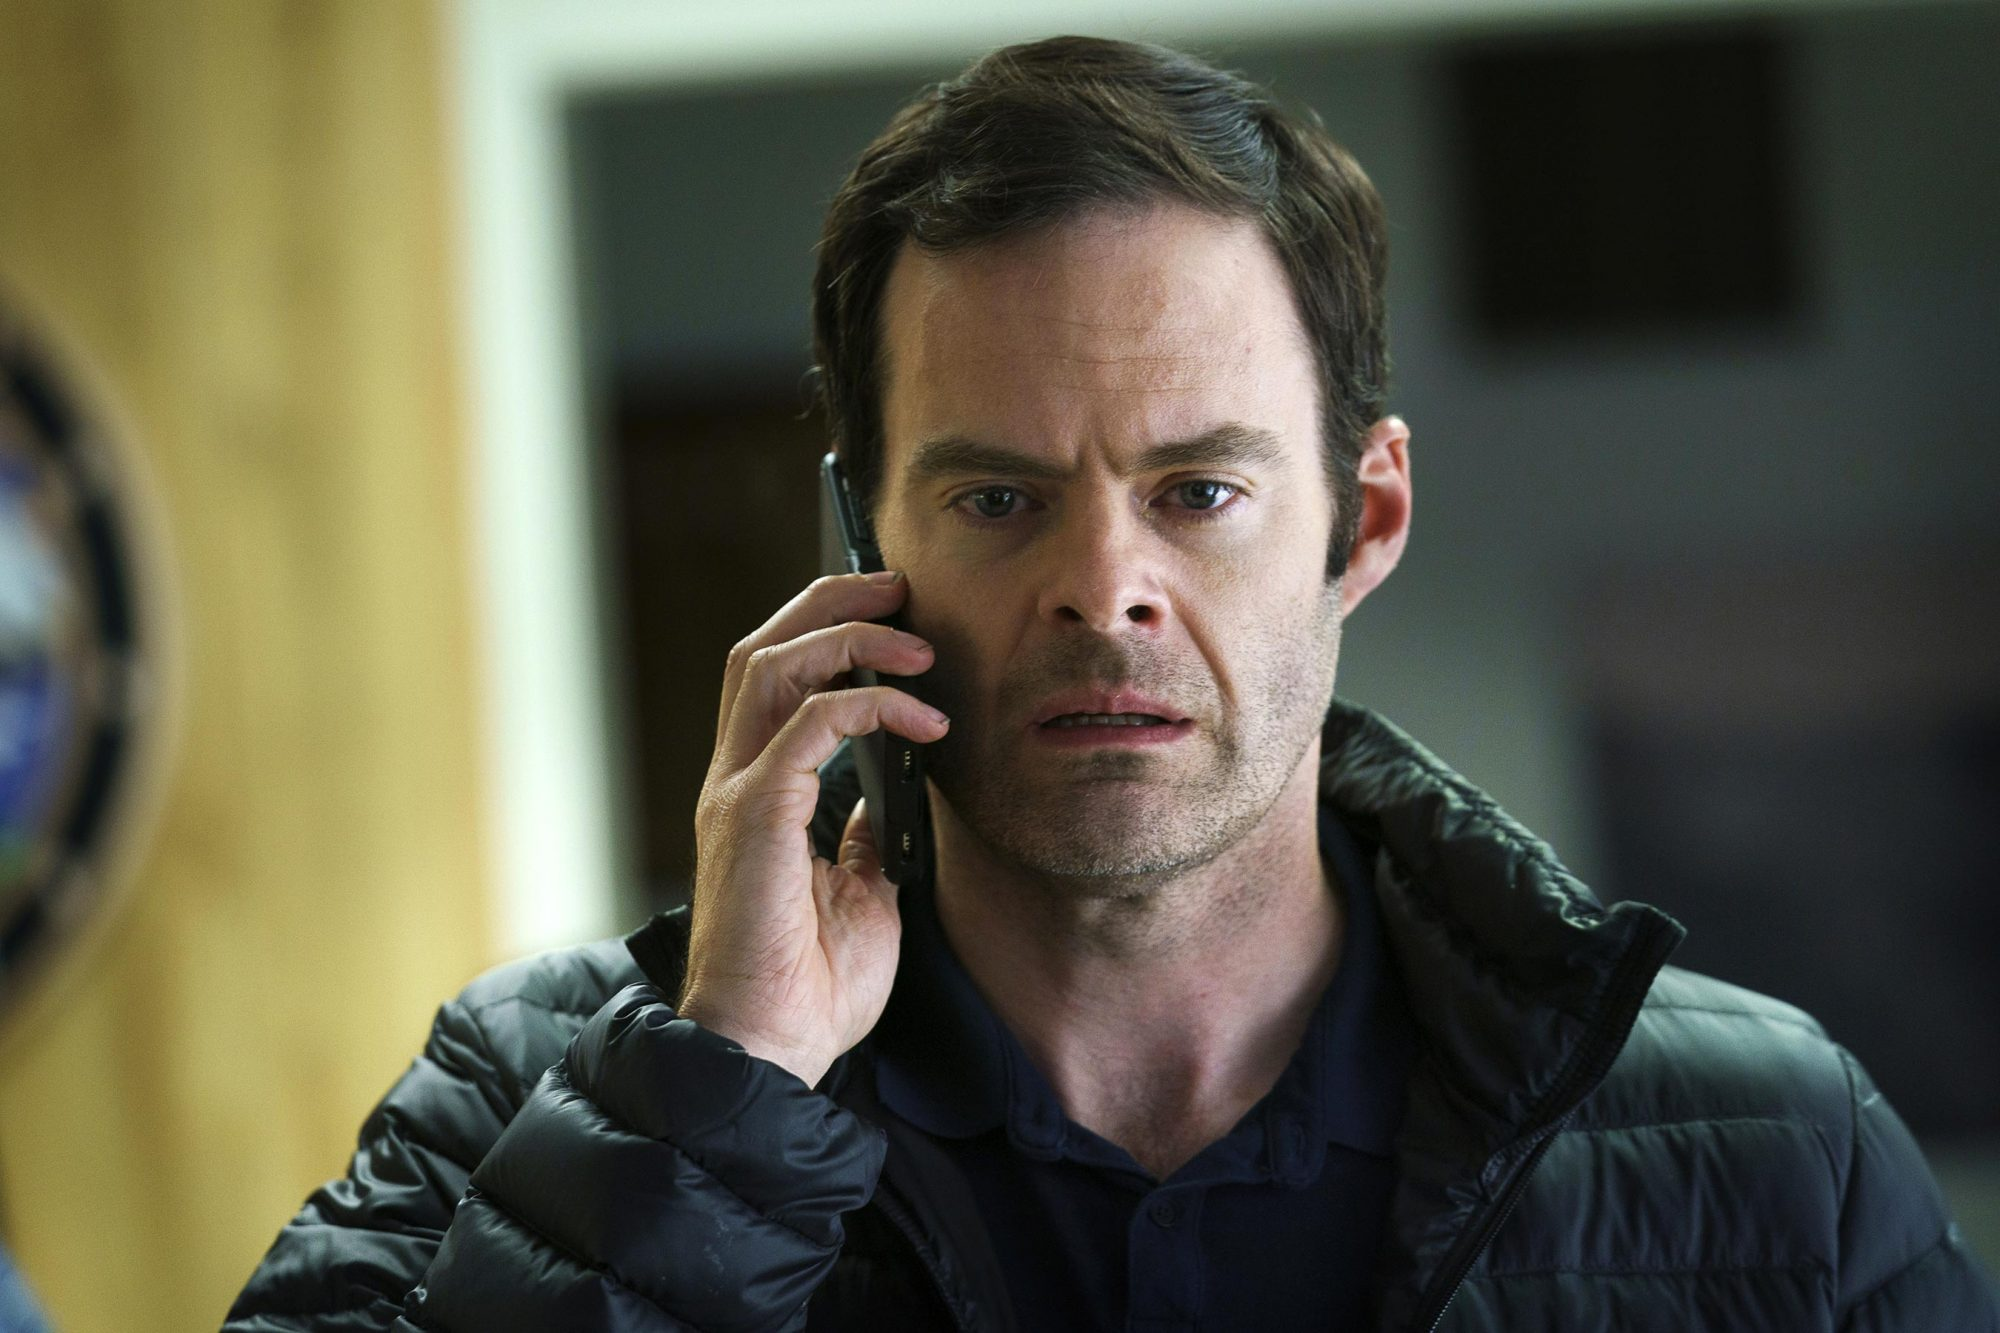 BarrySeason 2, episode 8 (debut 5/19/19): Bill Hader.photo: Aaron Epstein/HBO